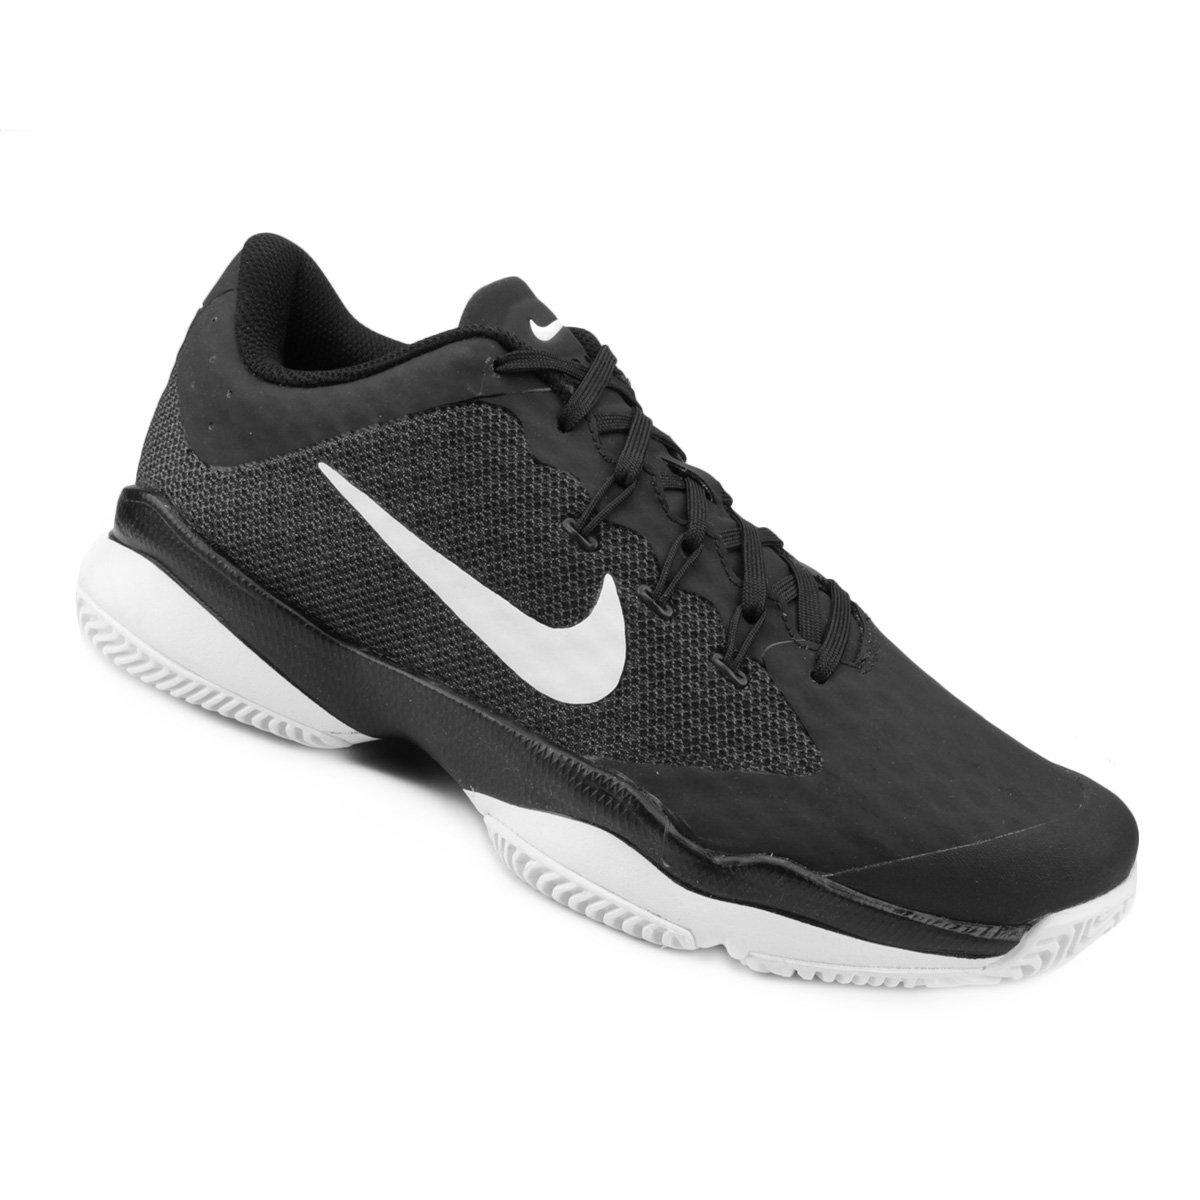 sale retailer f232a 2922c Tênis Nike Air Zoom Ultra Masculino - Compre Agora  Netshoes